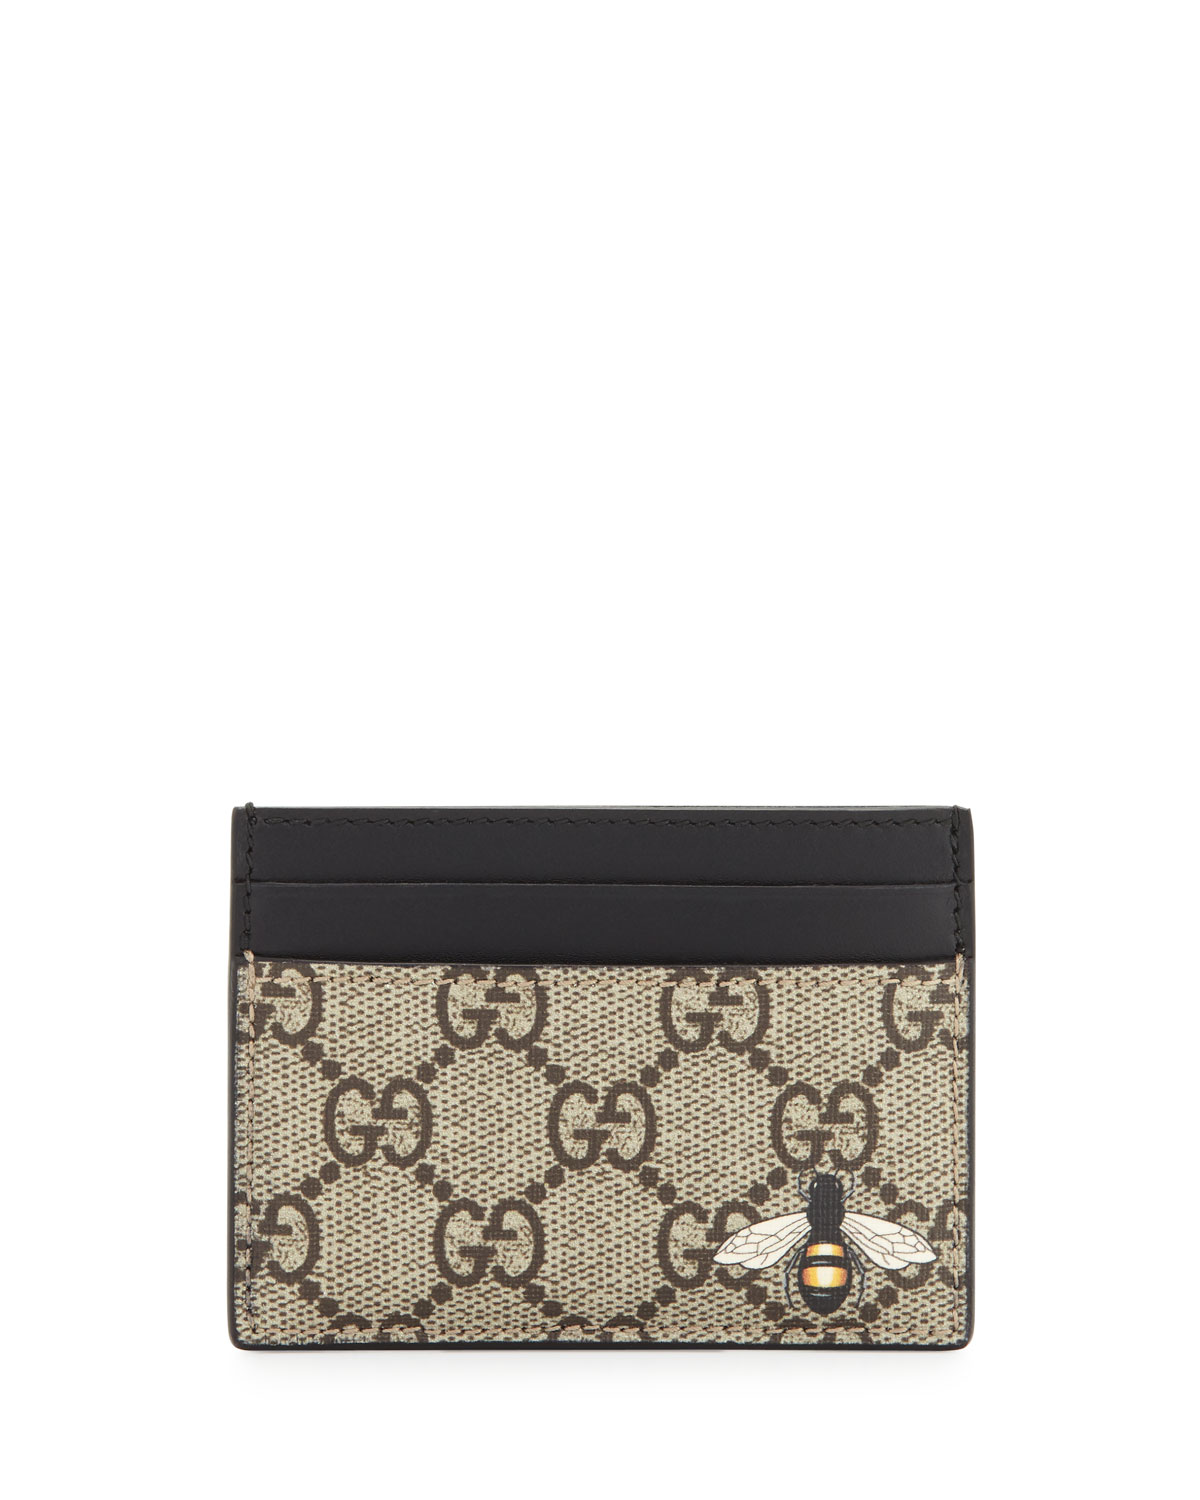 2af903416a824f Gucci Bestiary Bee-Print GG Supreme Card Case | Neiman Marcus